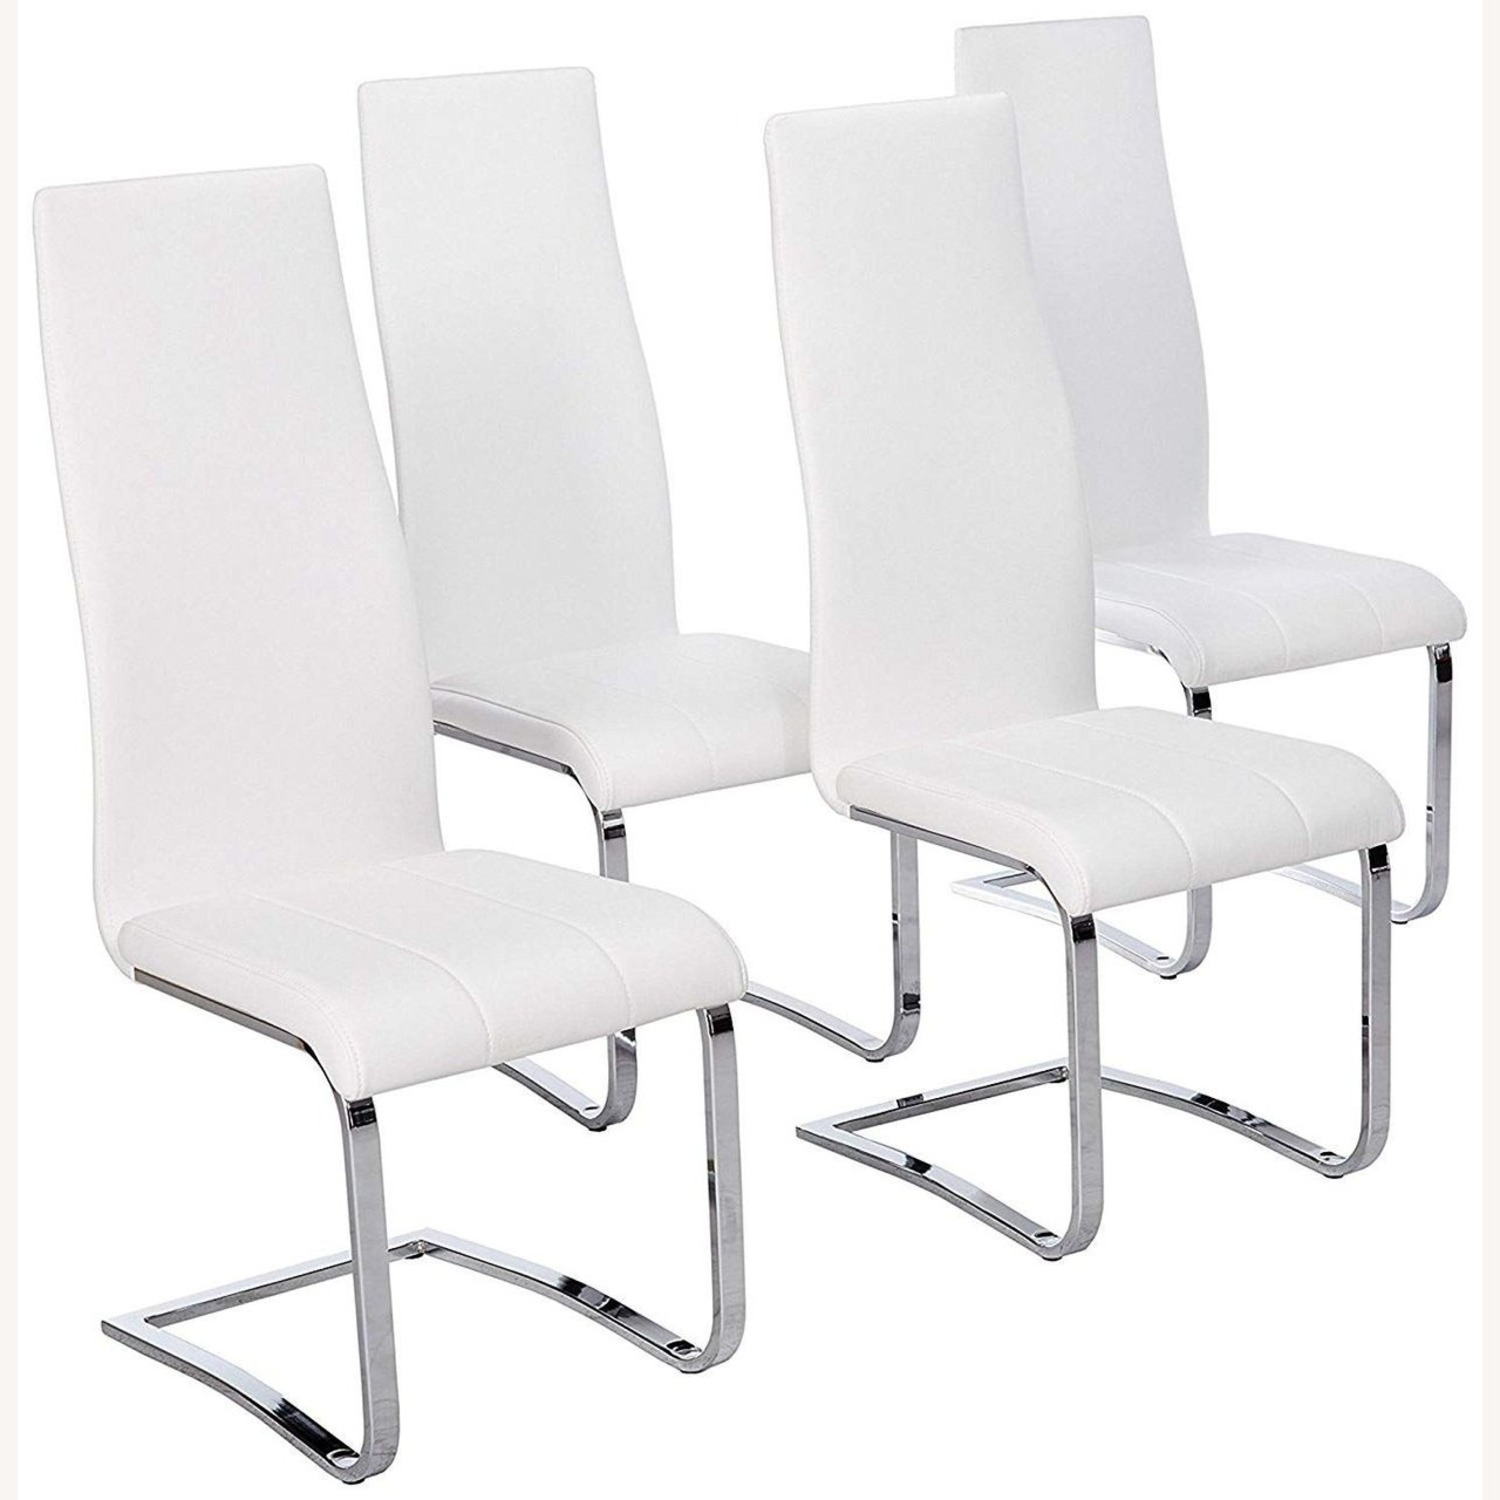 Iconic Breuer Style Side Chair In White Leather - image-1